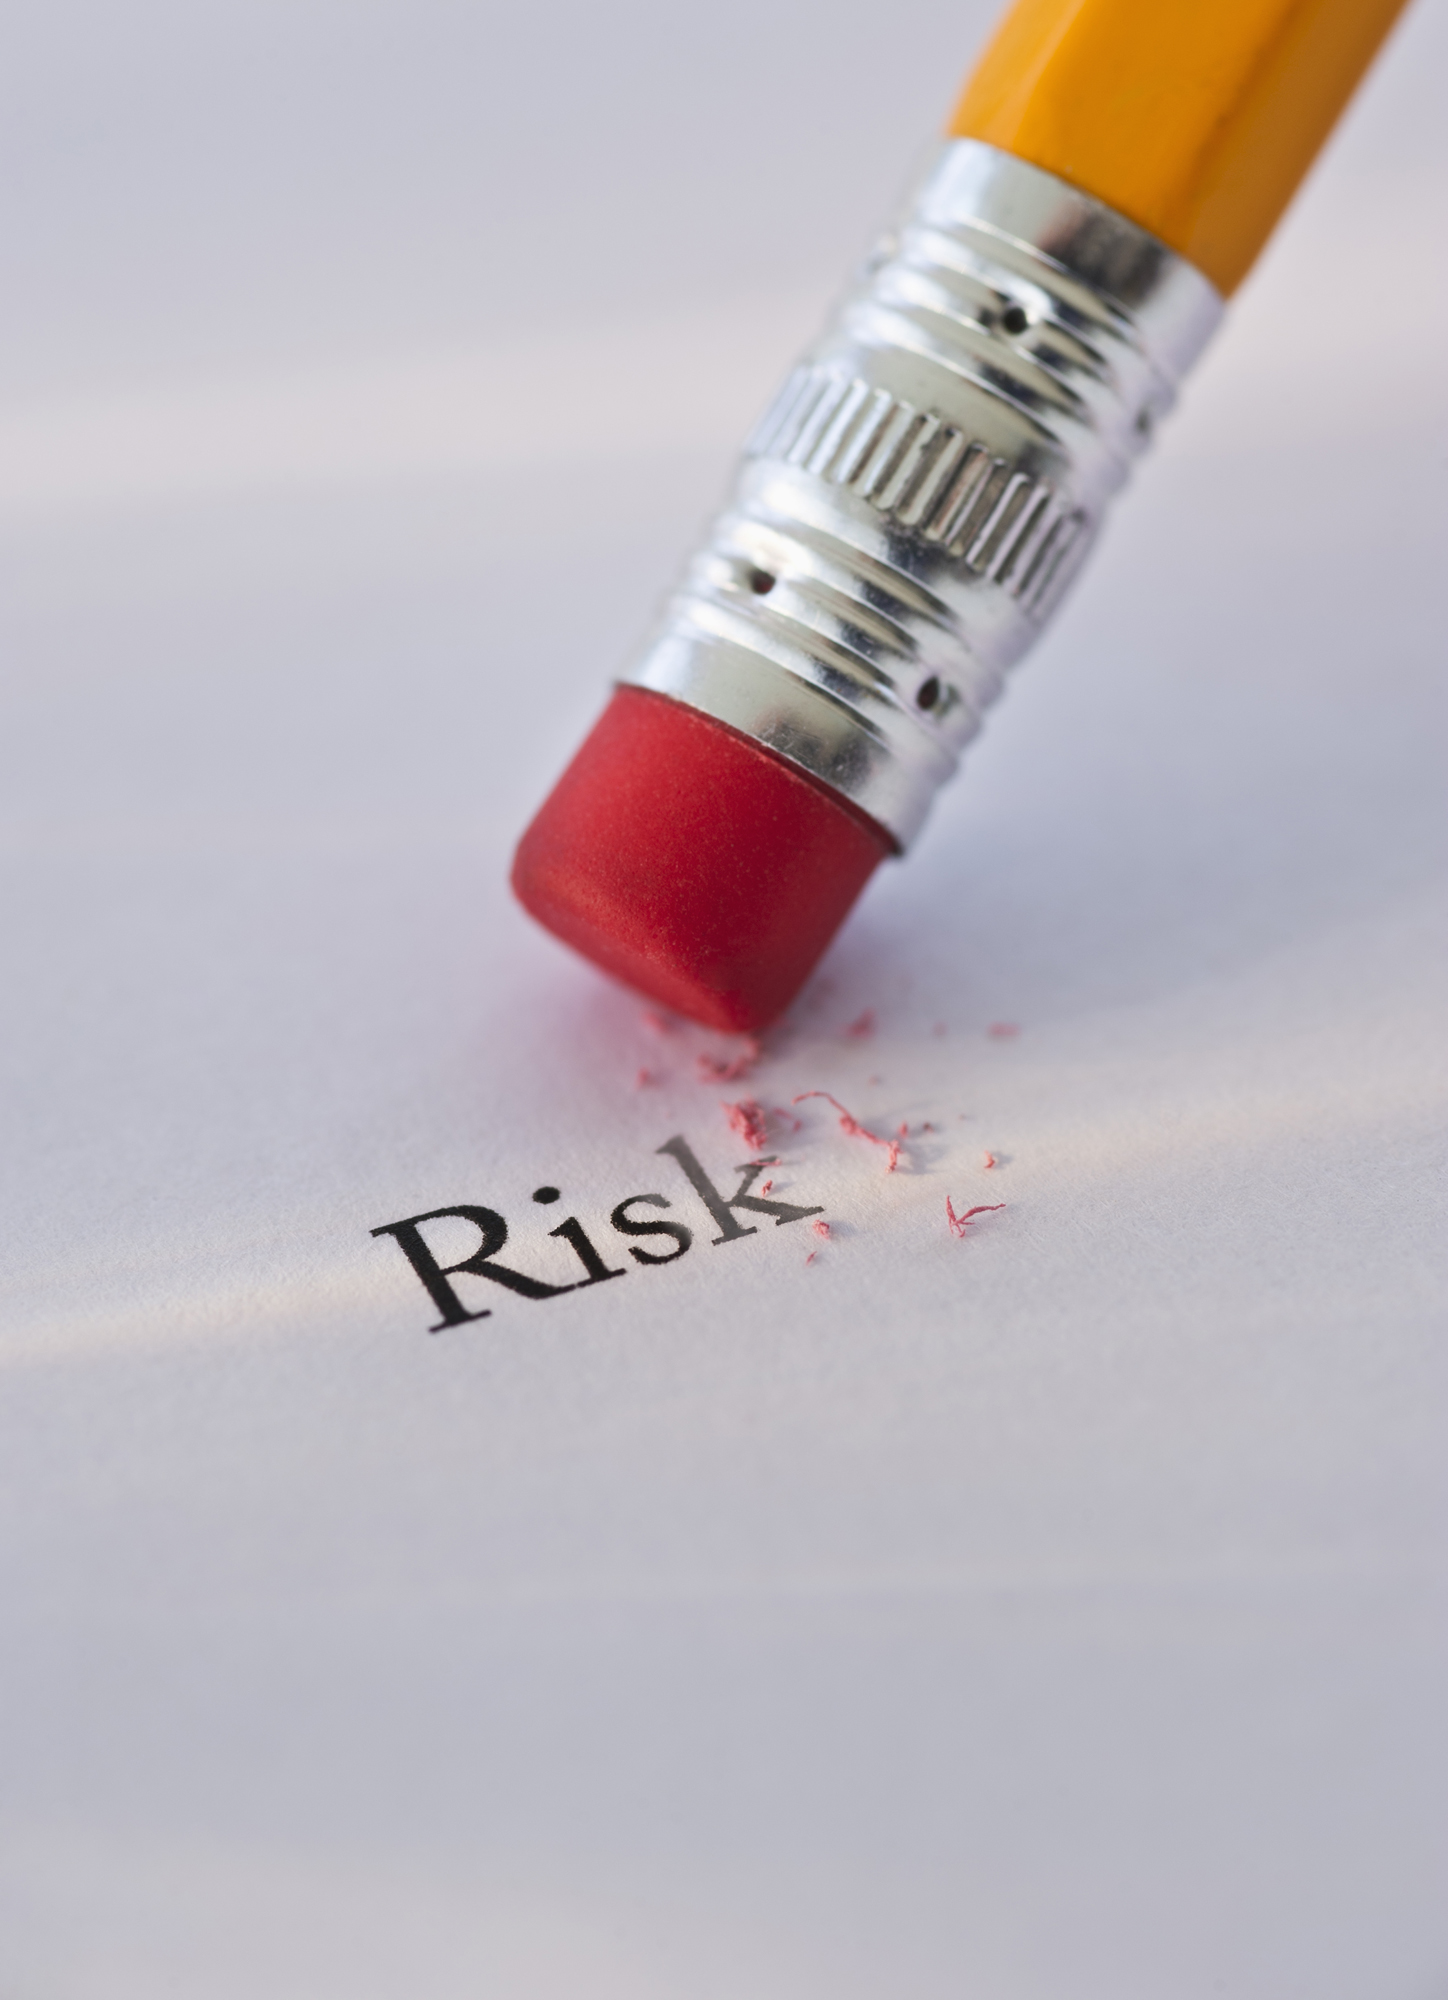 Pencil erasing the word risk